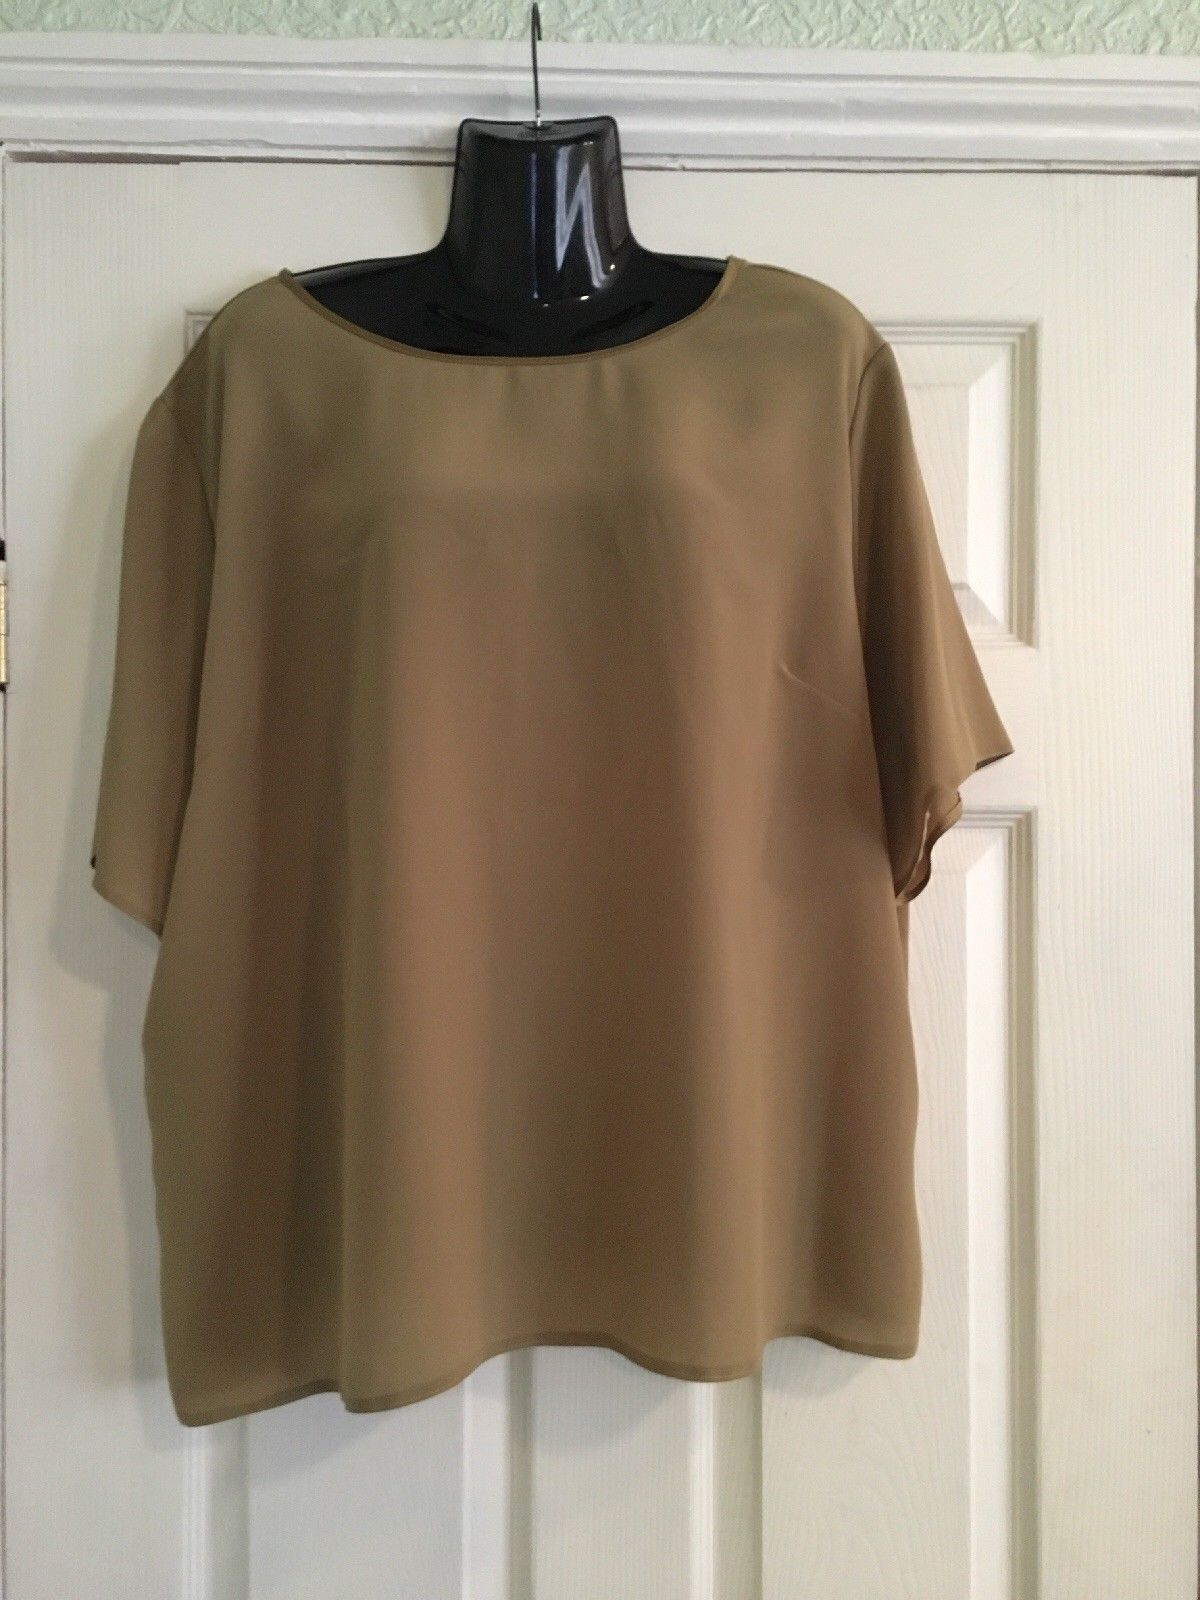 Plus size olive green top by sara neal size brand new with tag